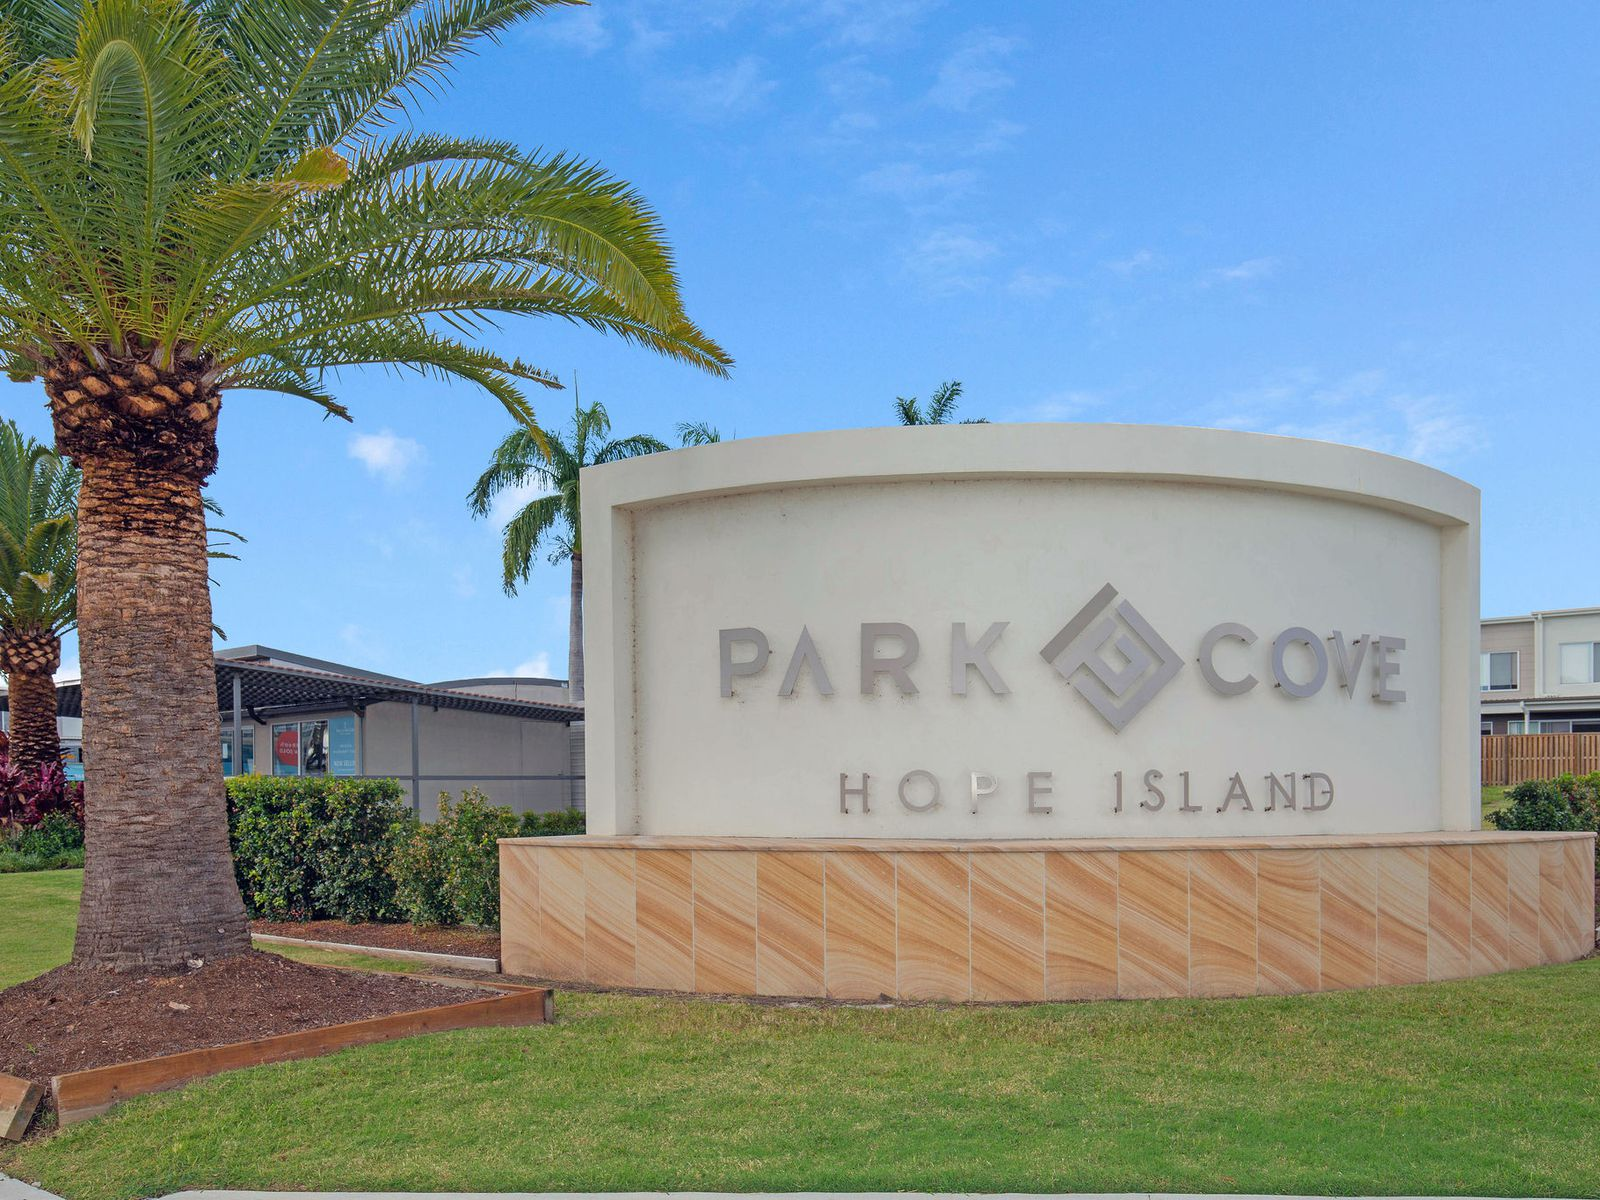 15 / 6 Park Cove Blvd, Hope Island